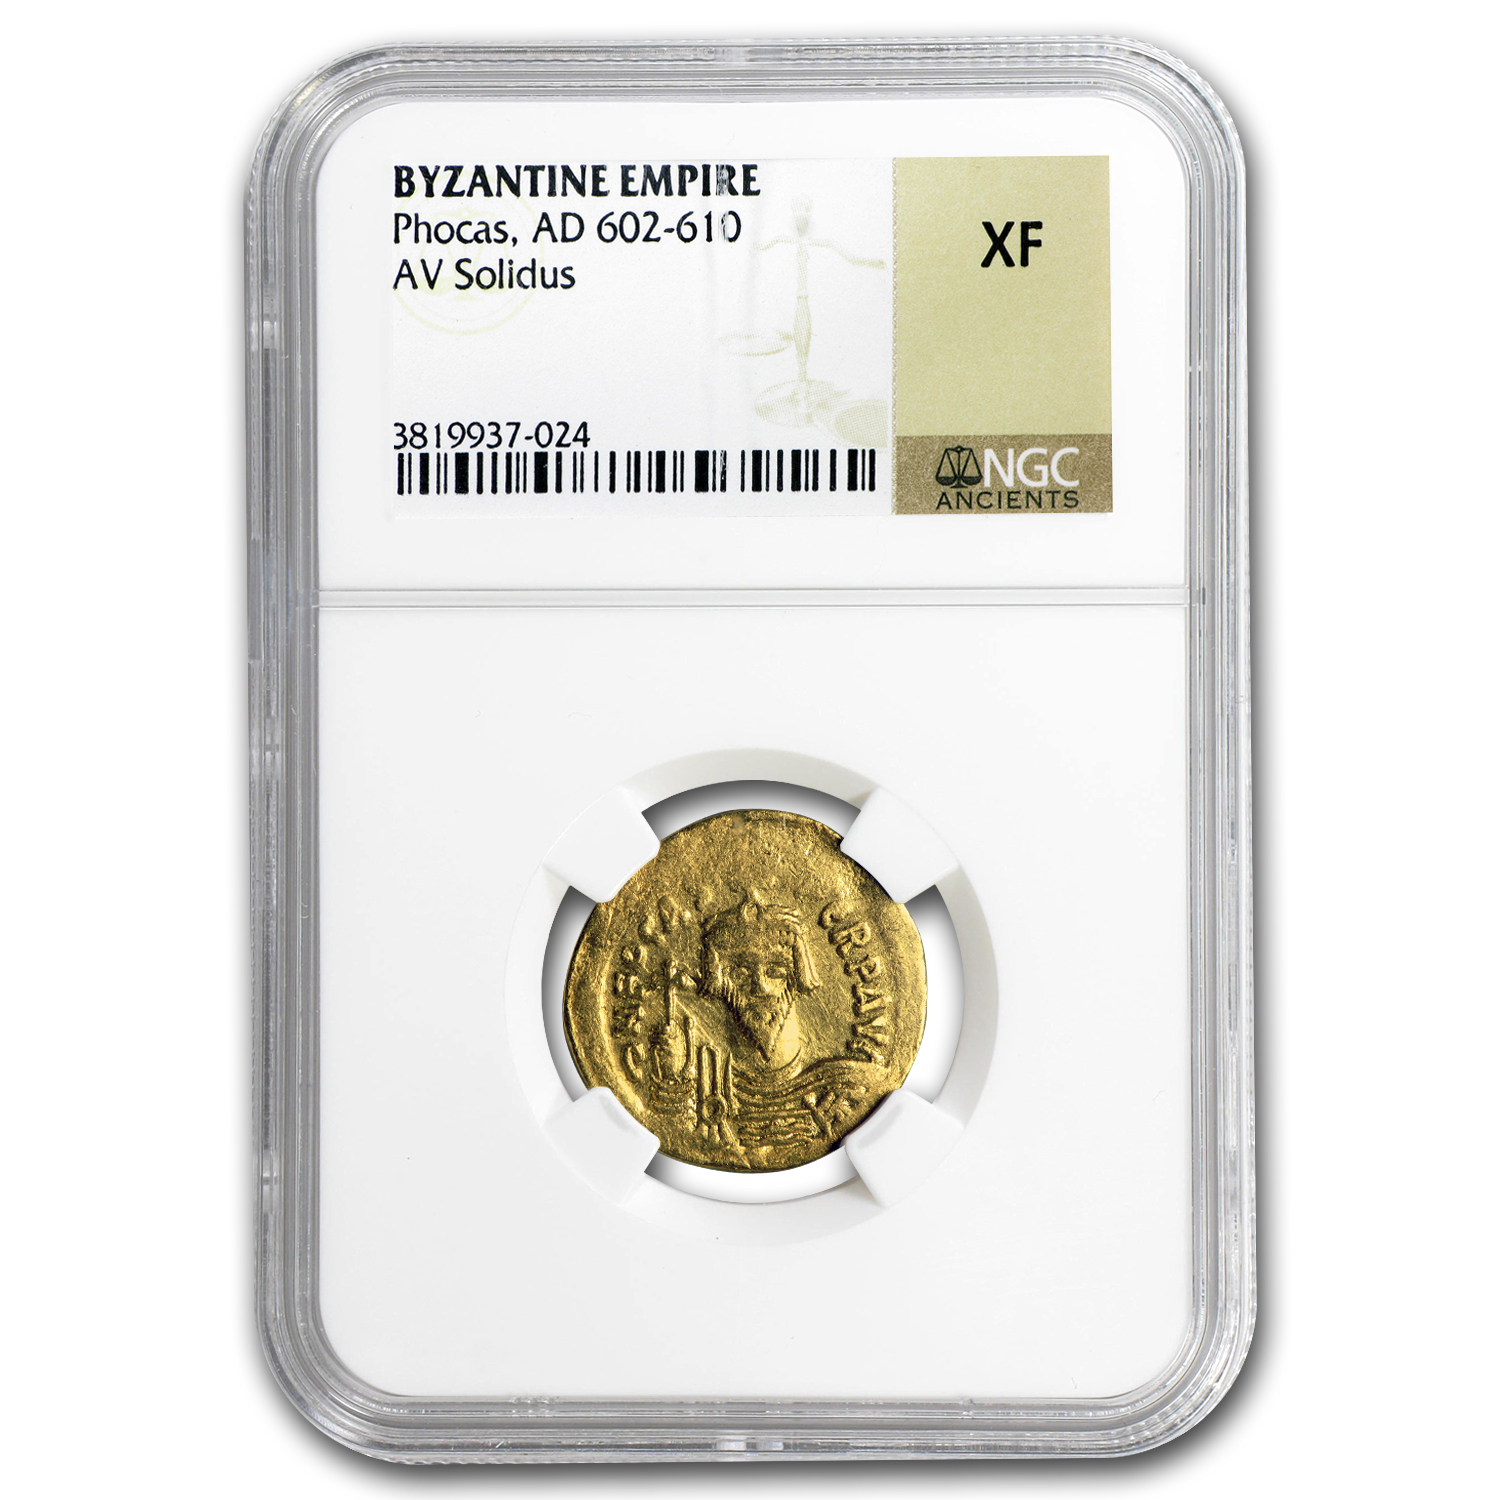 Byzantine Gold Emperor Solidus Phocas (602-610 AD) XF NGC